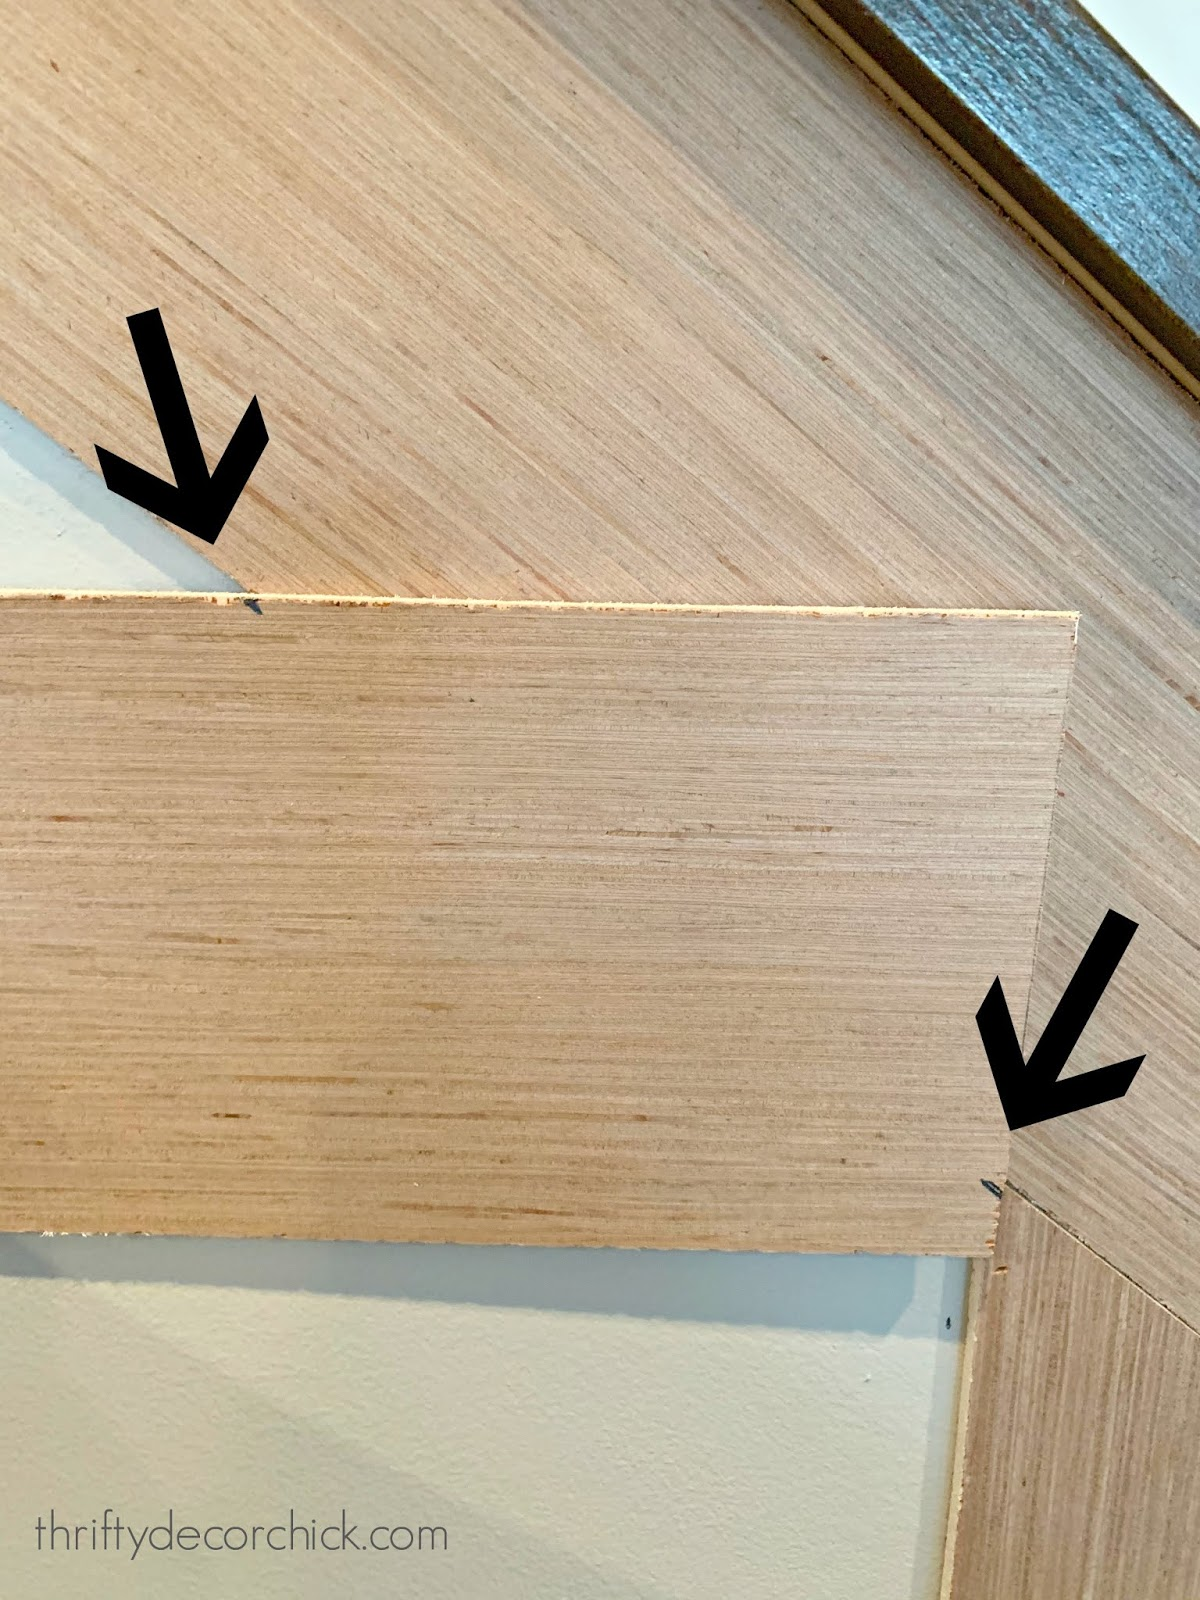 How to get a perfect angle when installing trim